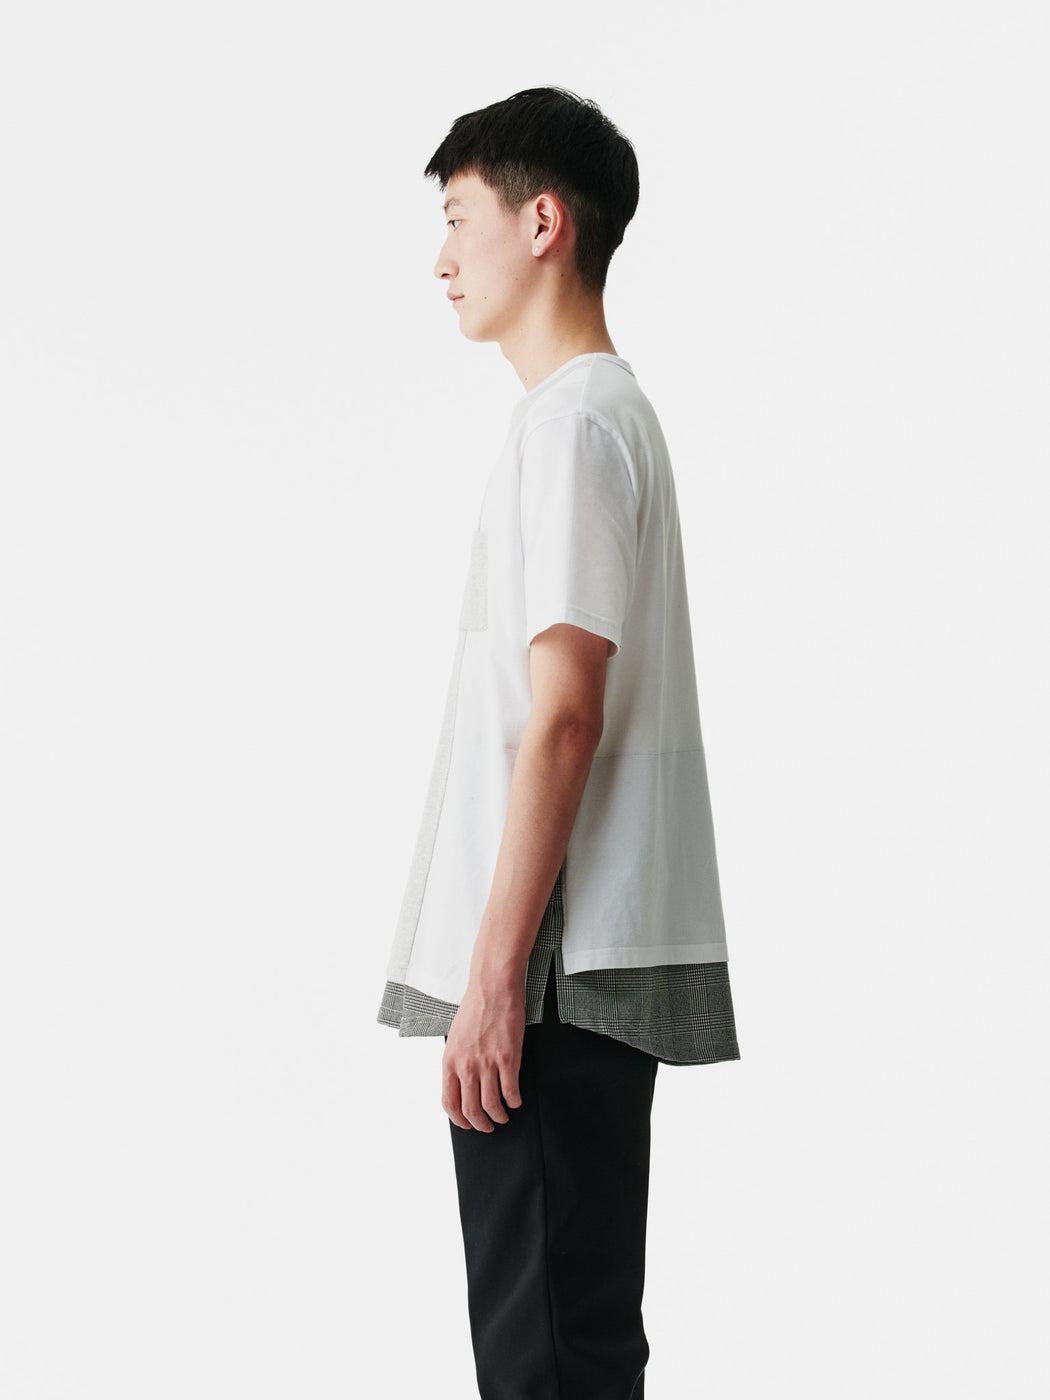 ALOYE Shirt Fabrics Short Sleeve Layerd T-shirt White-Glen Plaid